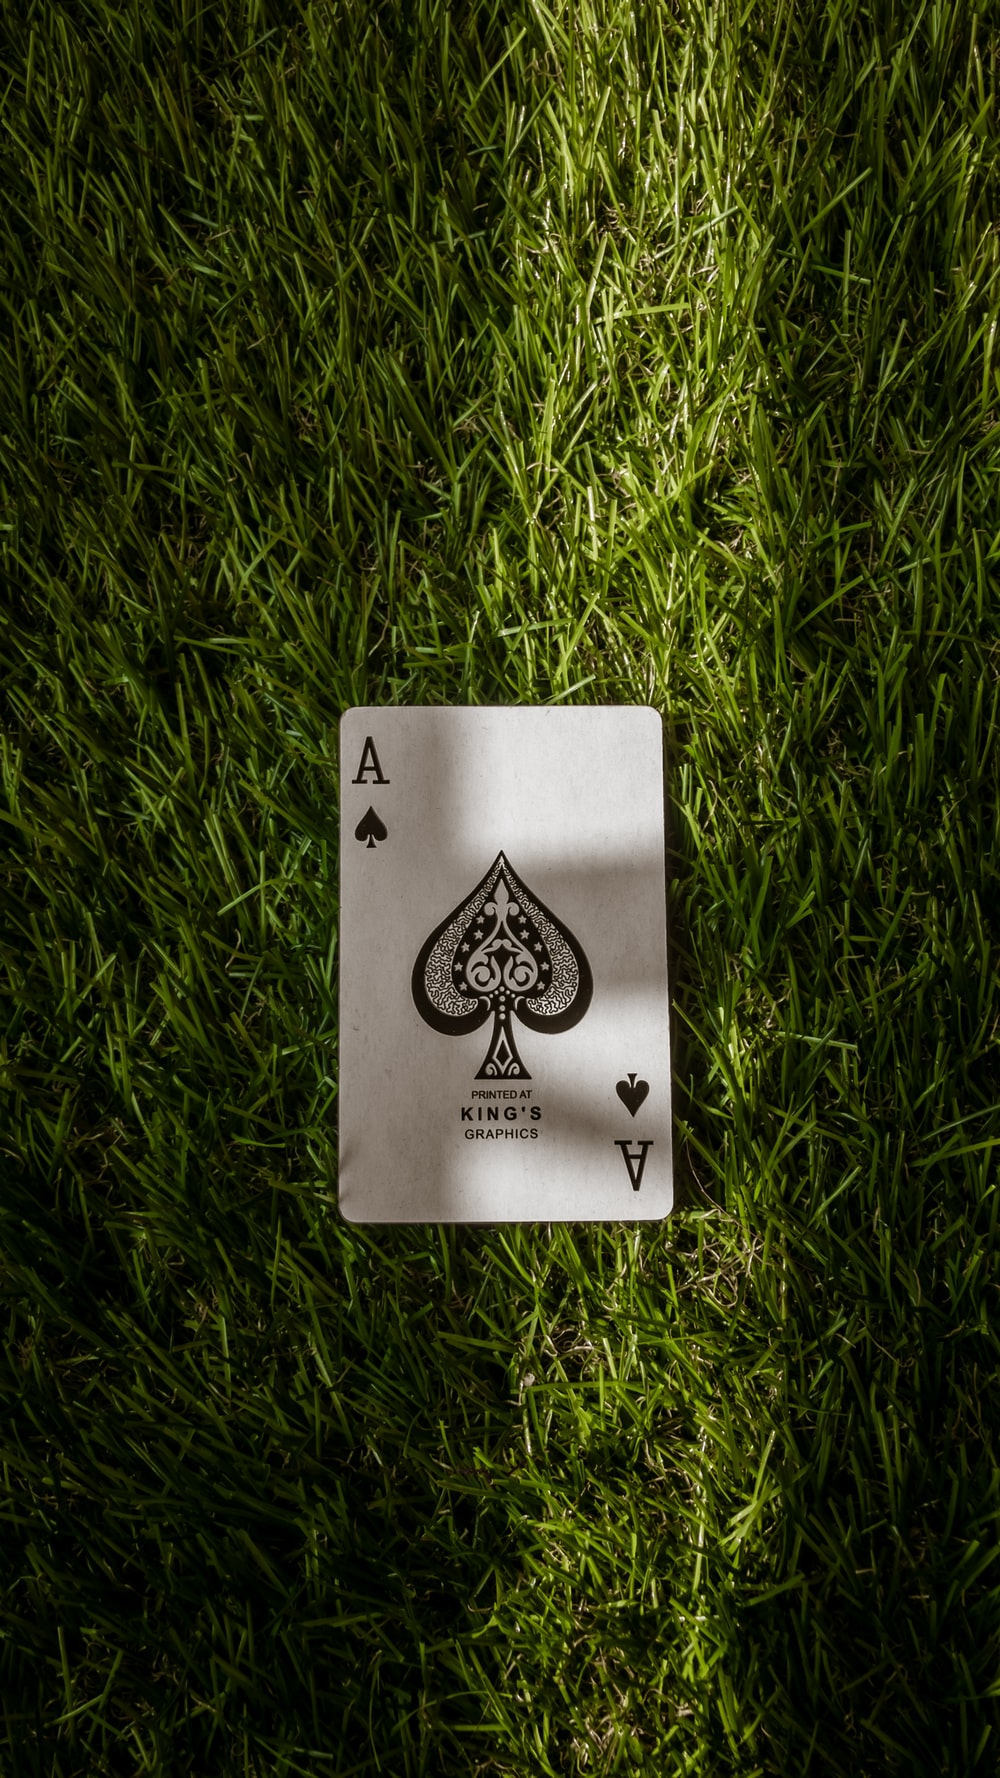 ace of spade playing card on green grass